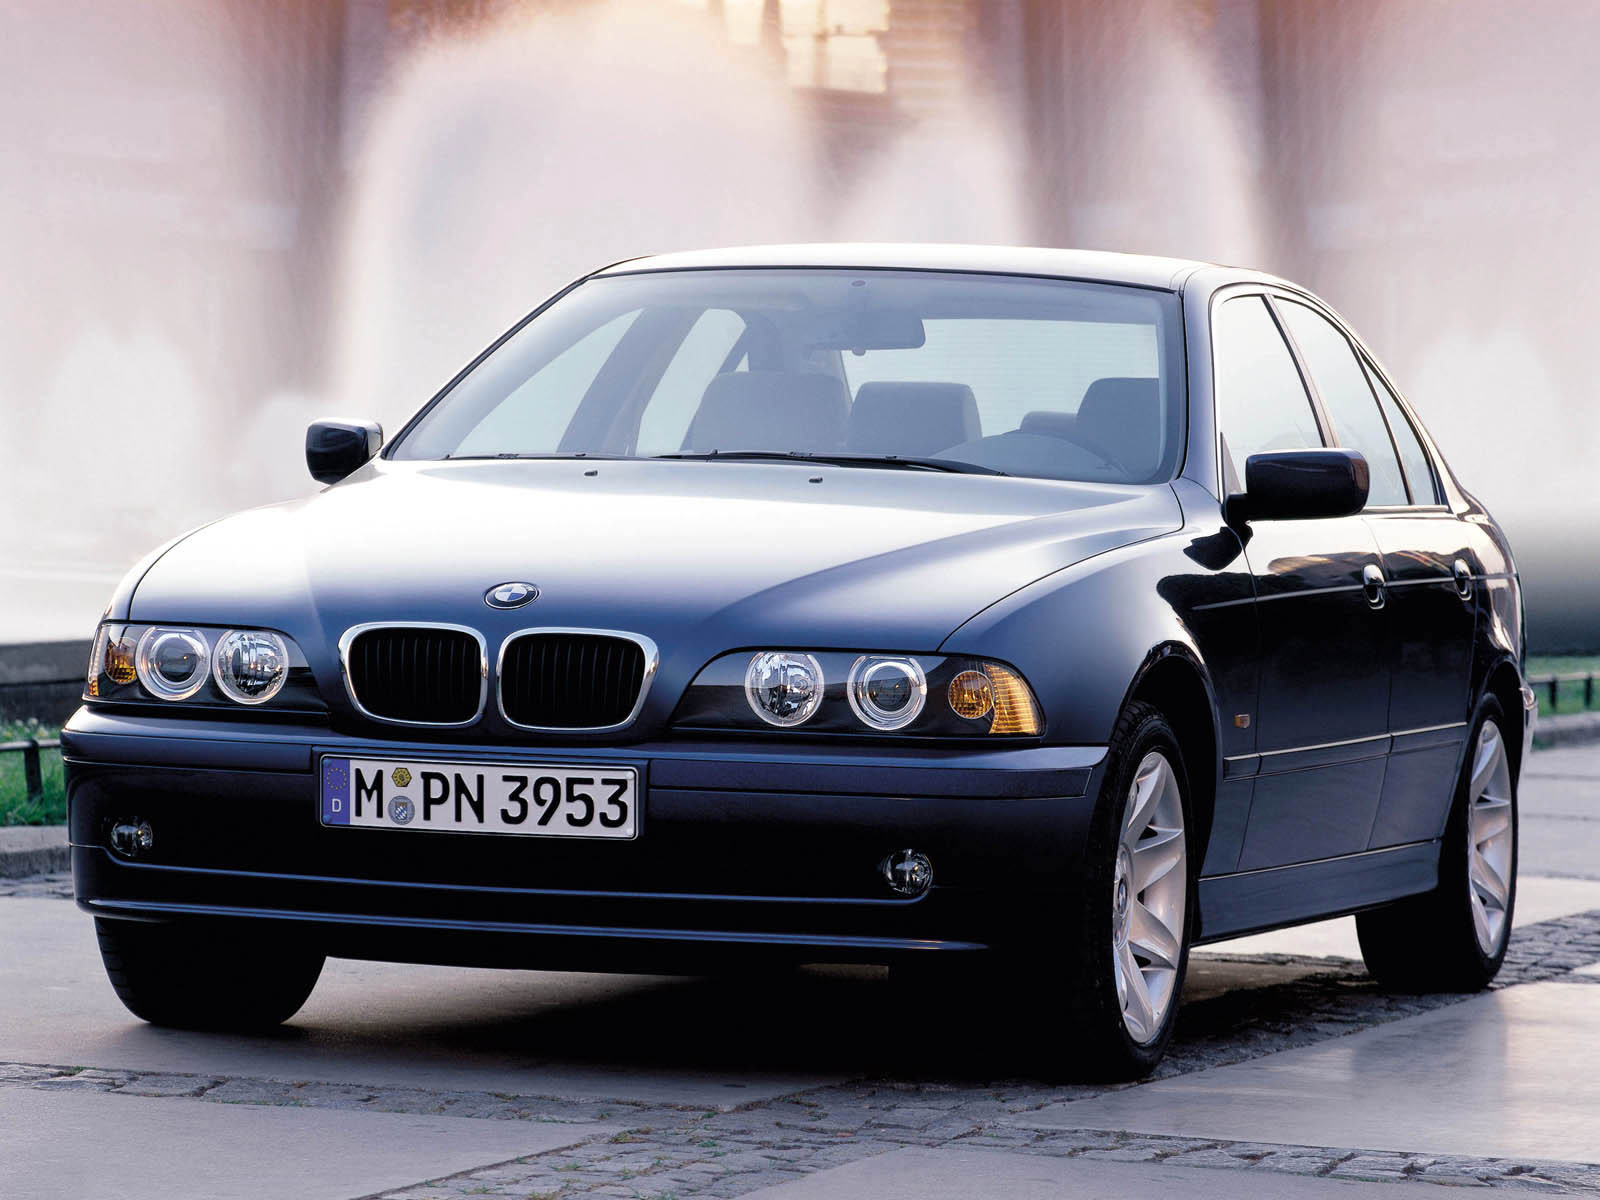 ridge series bmw for in sedan sale used ny pound